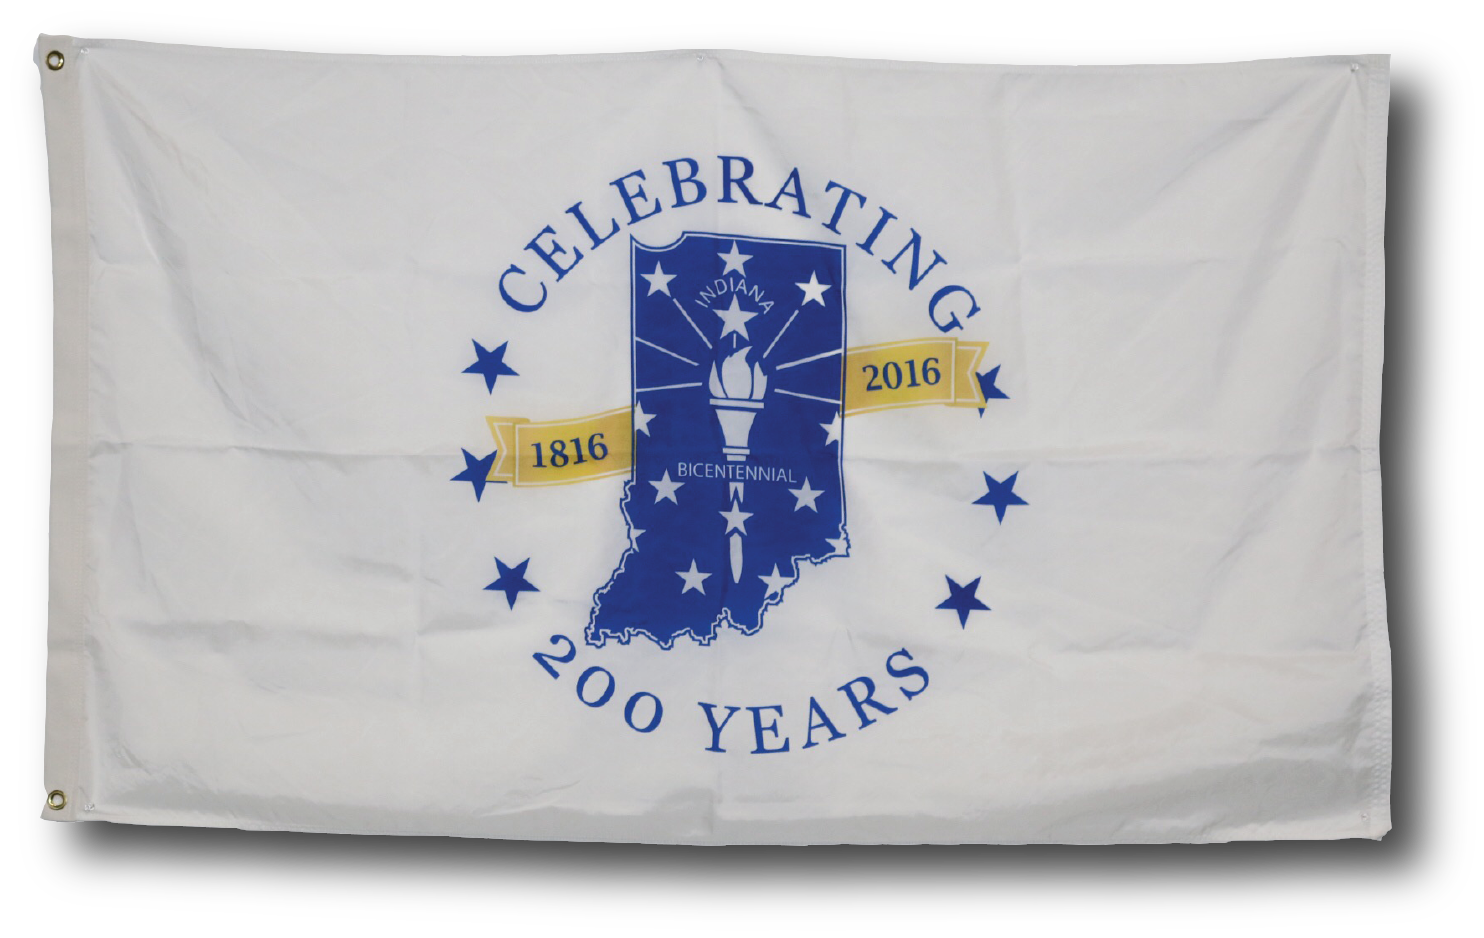 Indiana Bicentennial Commemorative Flag